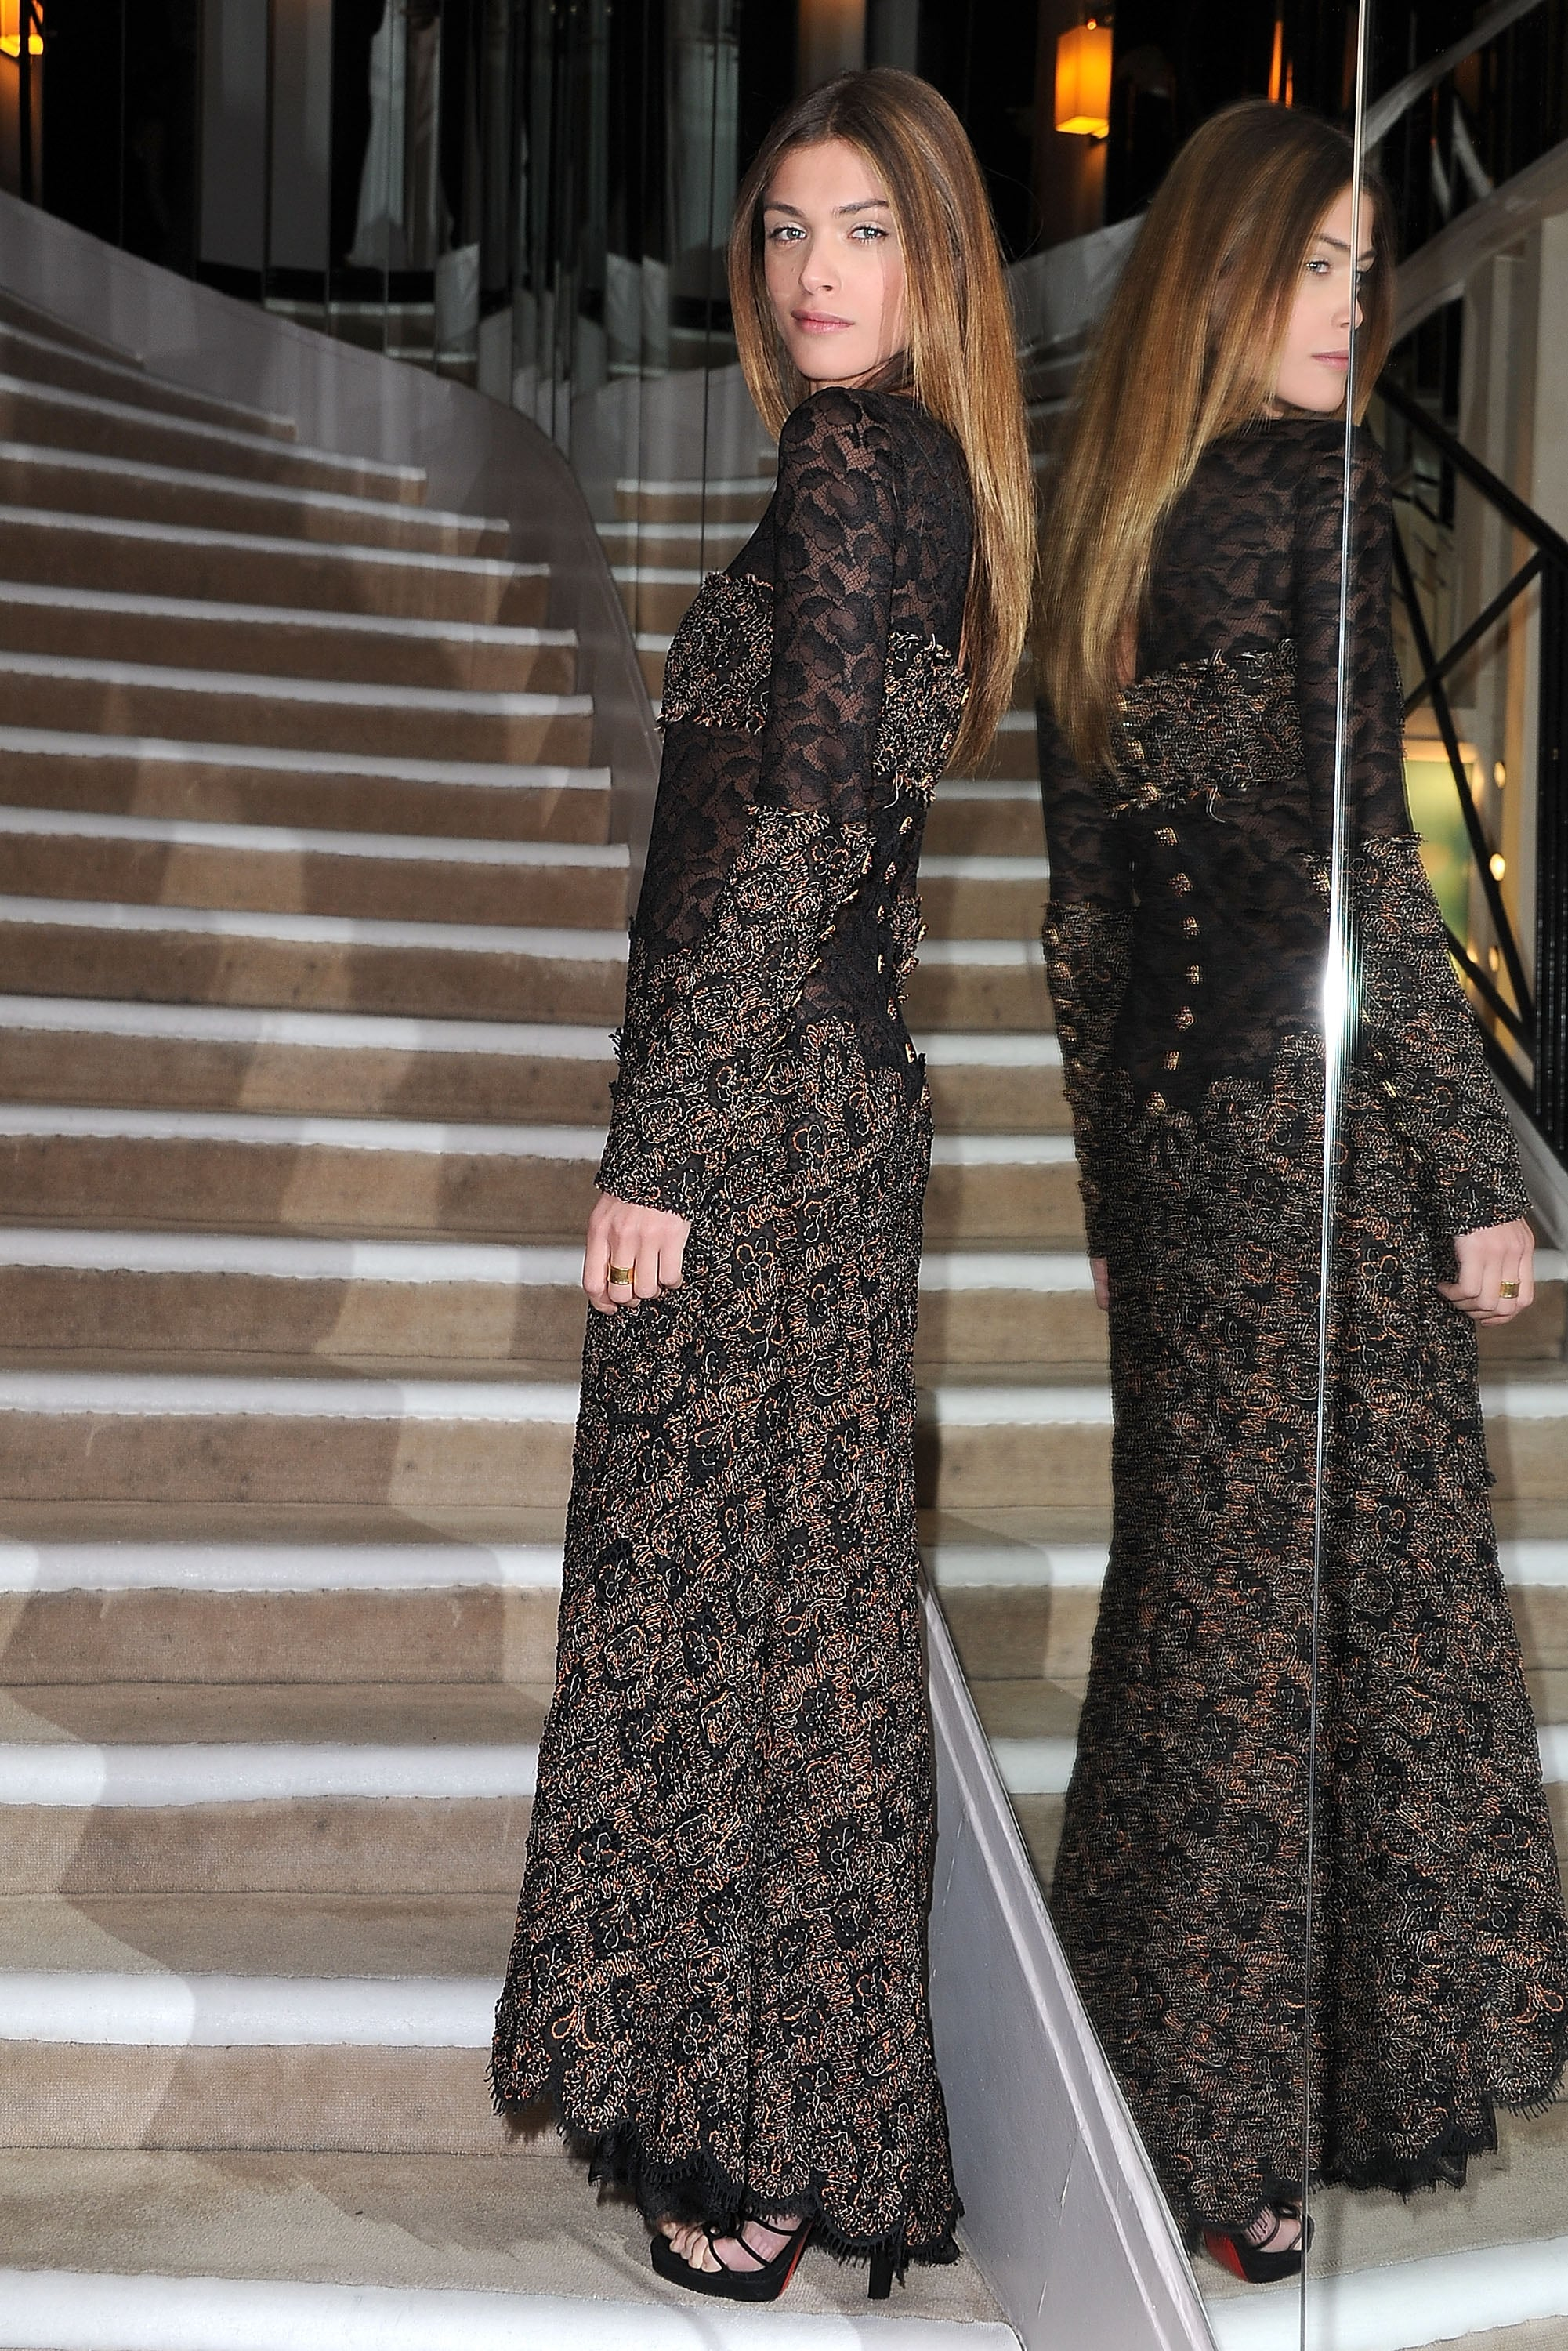 Elisa Sednaoui's form fitting maxi was a picture of elegance.